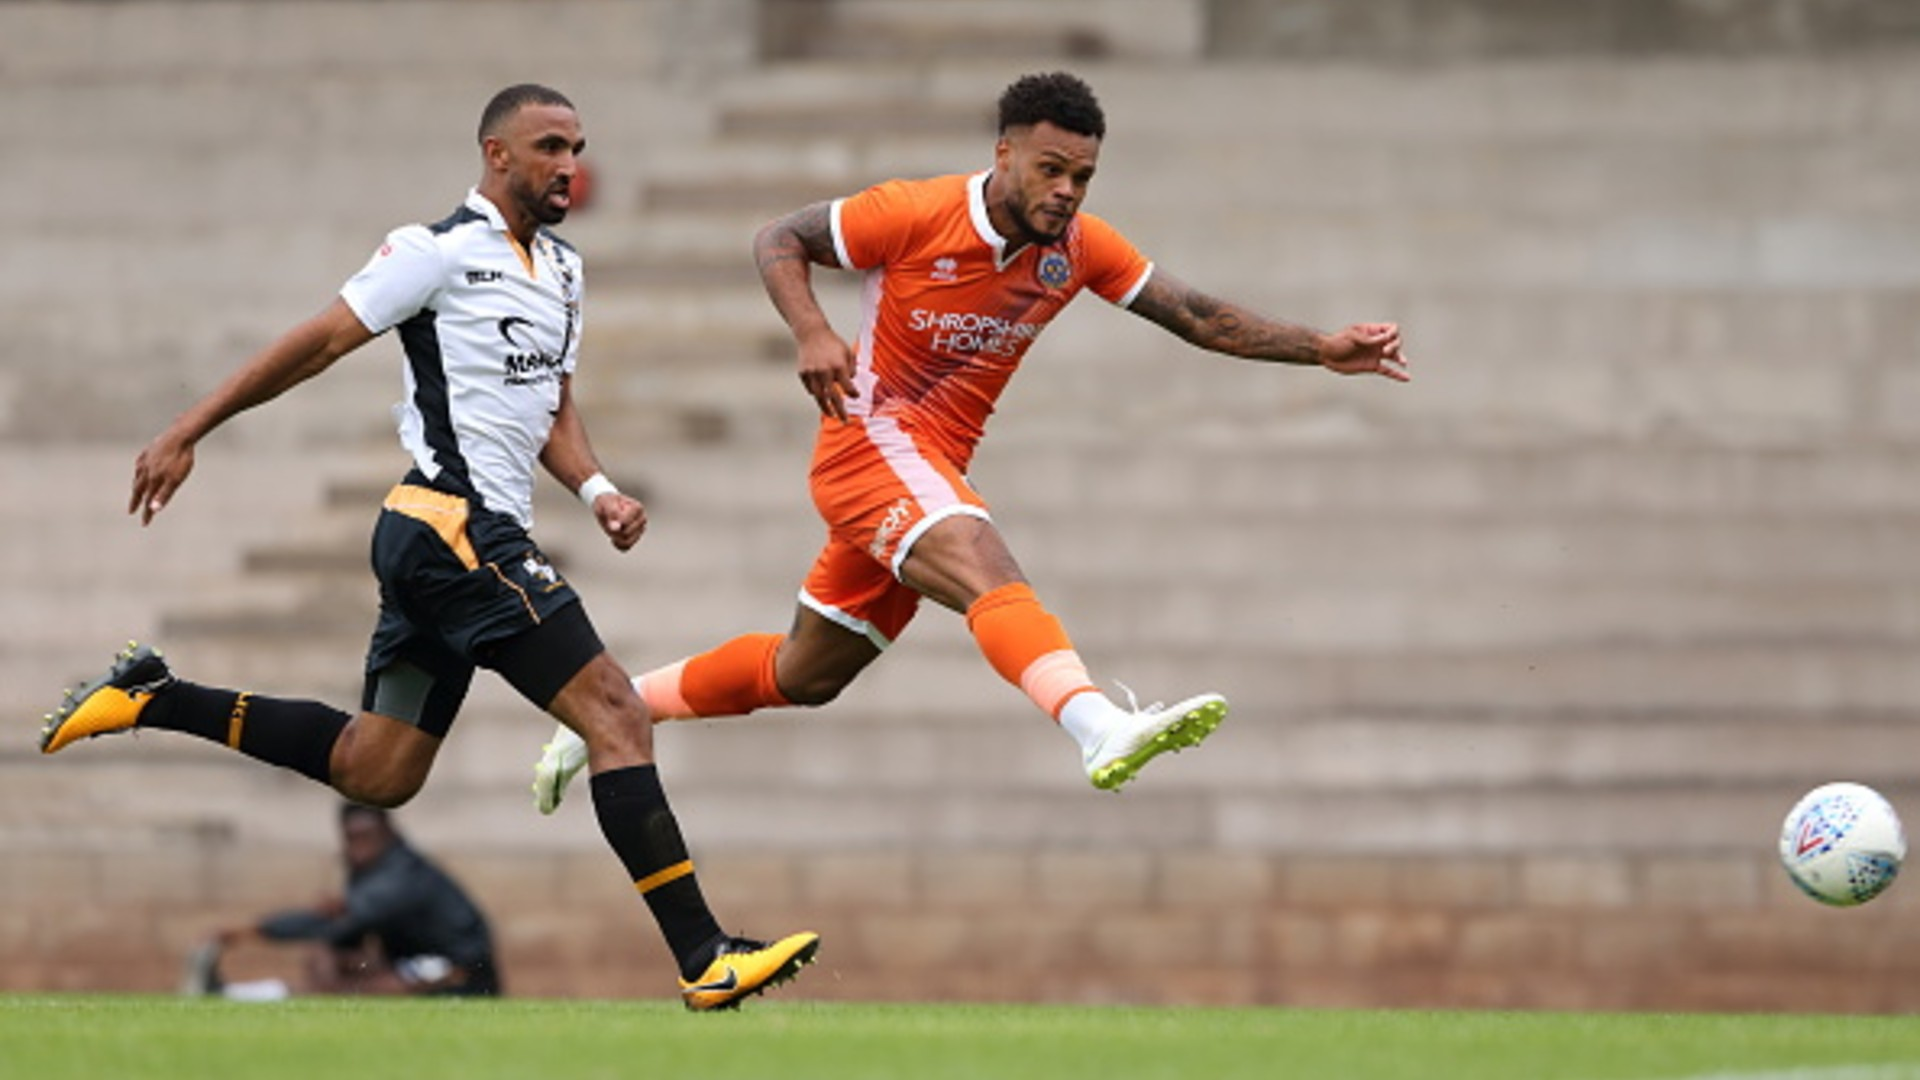 East Bengal: A look into the career of Welsh forward Aaron Amadi-Holloway